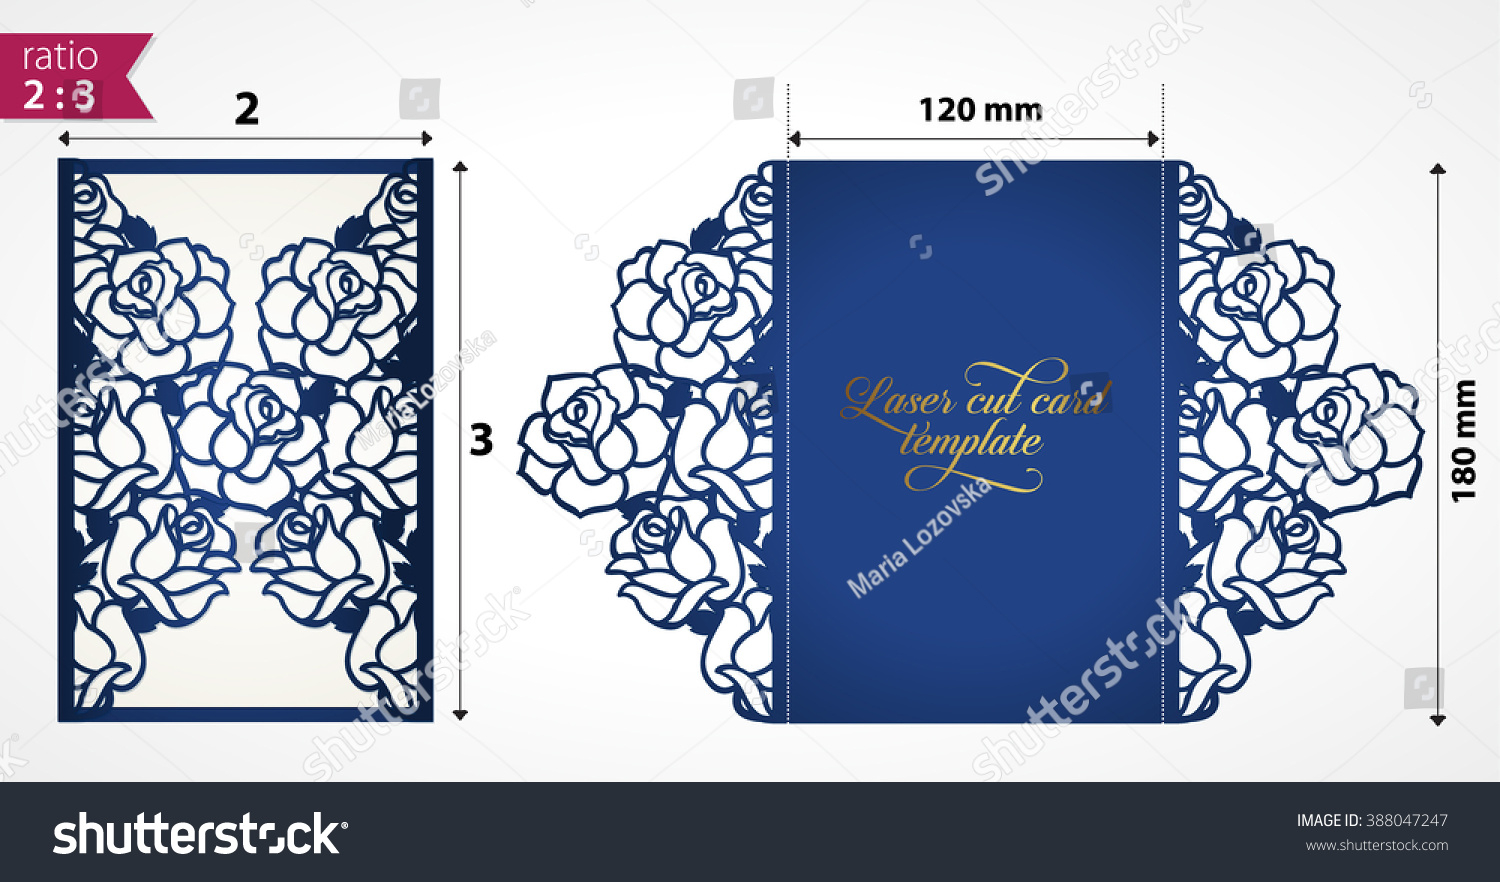 Laser Cut Wedding Invitation Template Roses Stock Vektorgrafik within size 1500 X 882